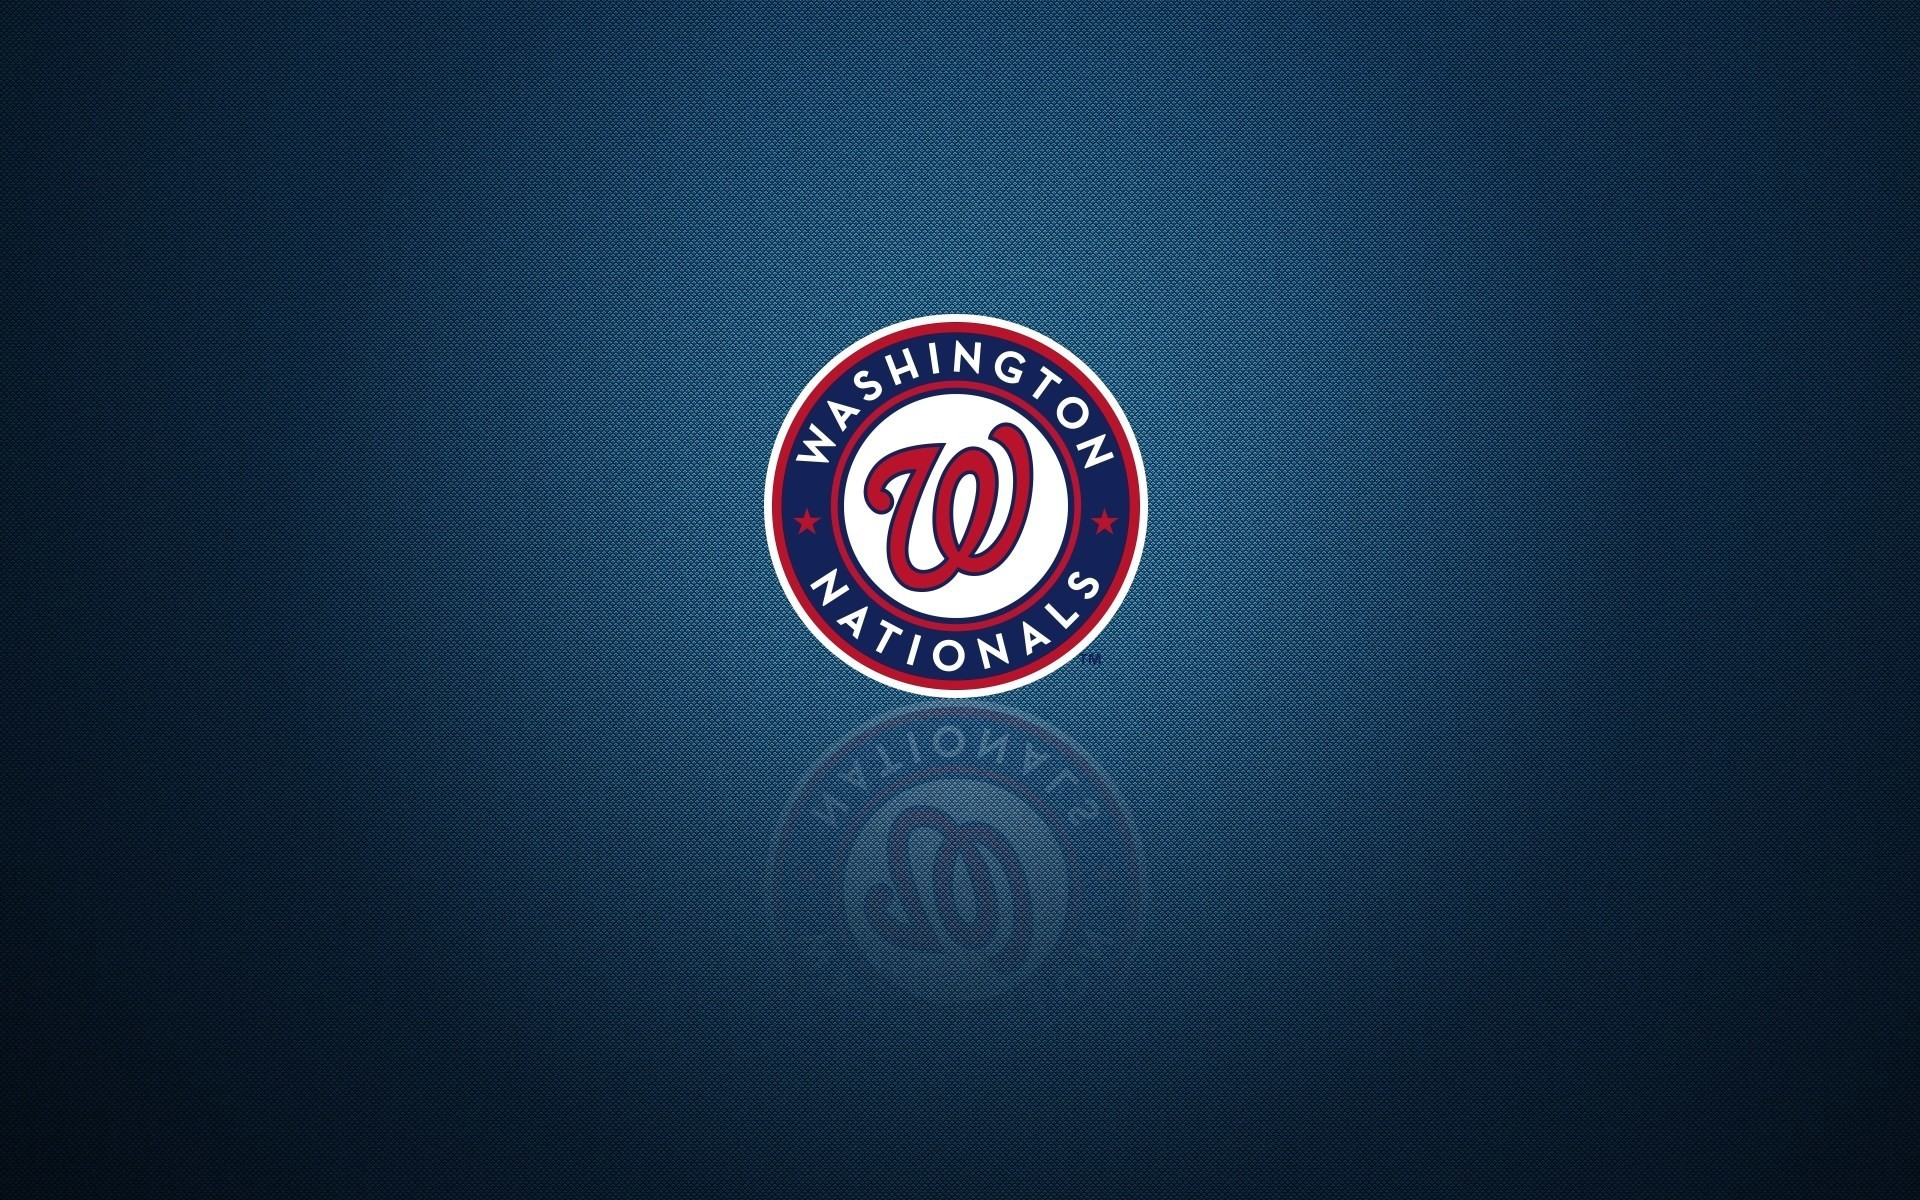 69 Washington Nationals Wallpapers on WallpaperPlay 1920x1200